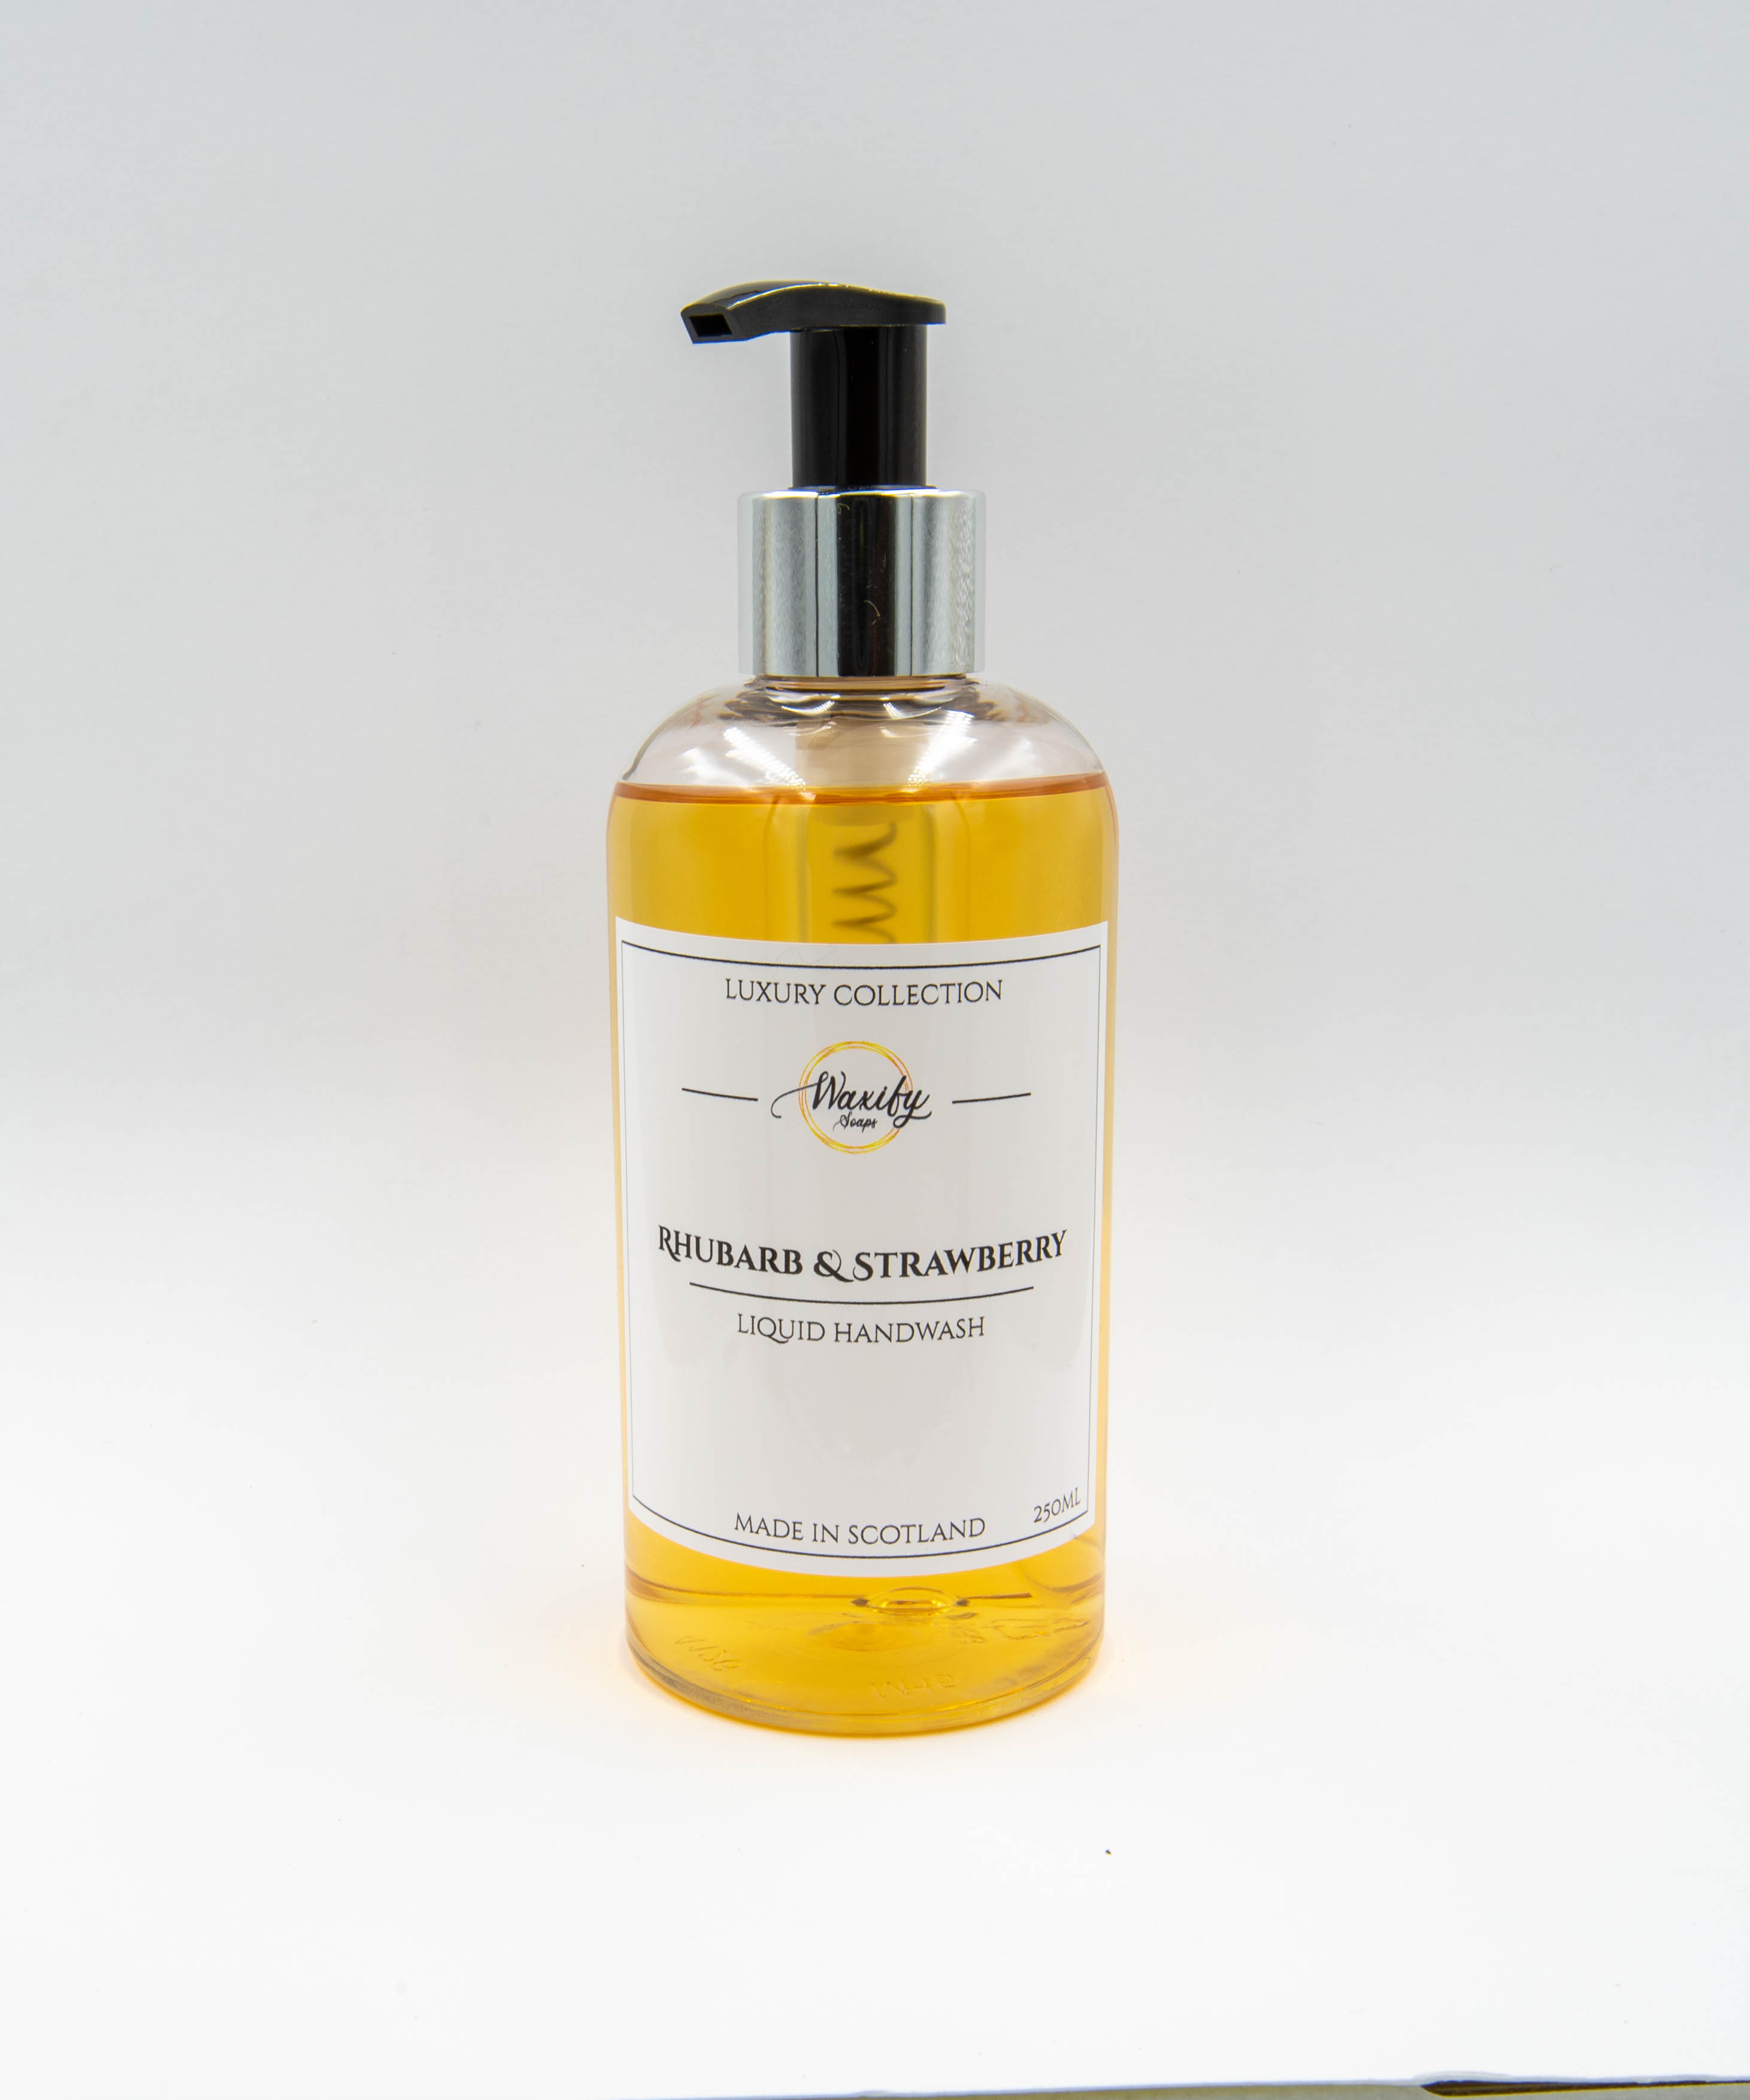 Rhubarb and Strawberry Luxury Handwash